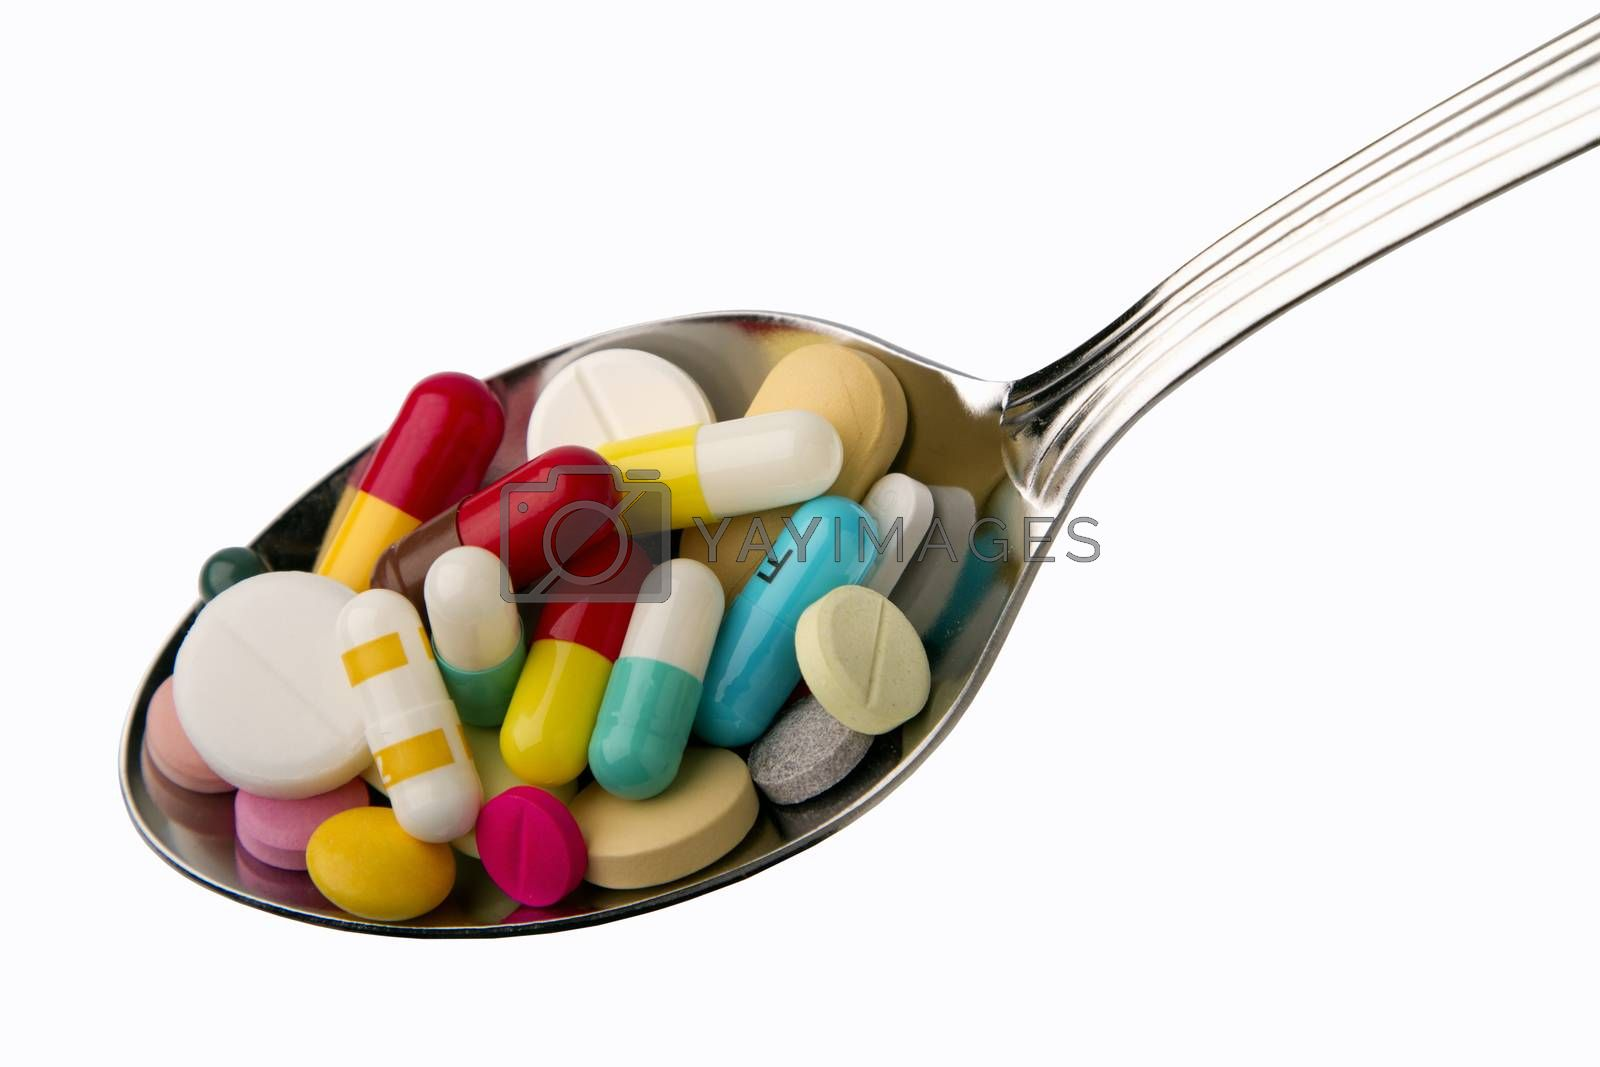 Royalty free image of spoon full of tablets  by phortcach